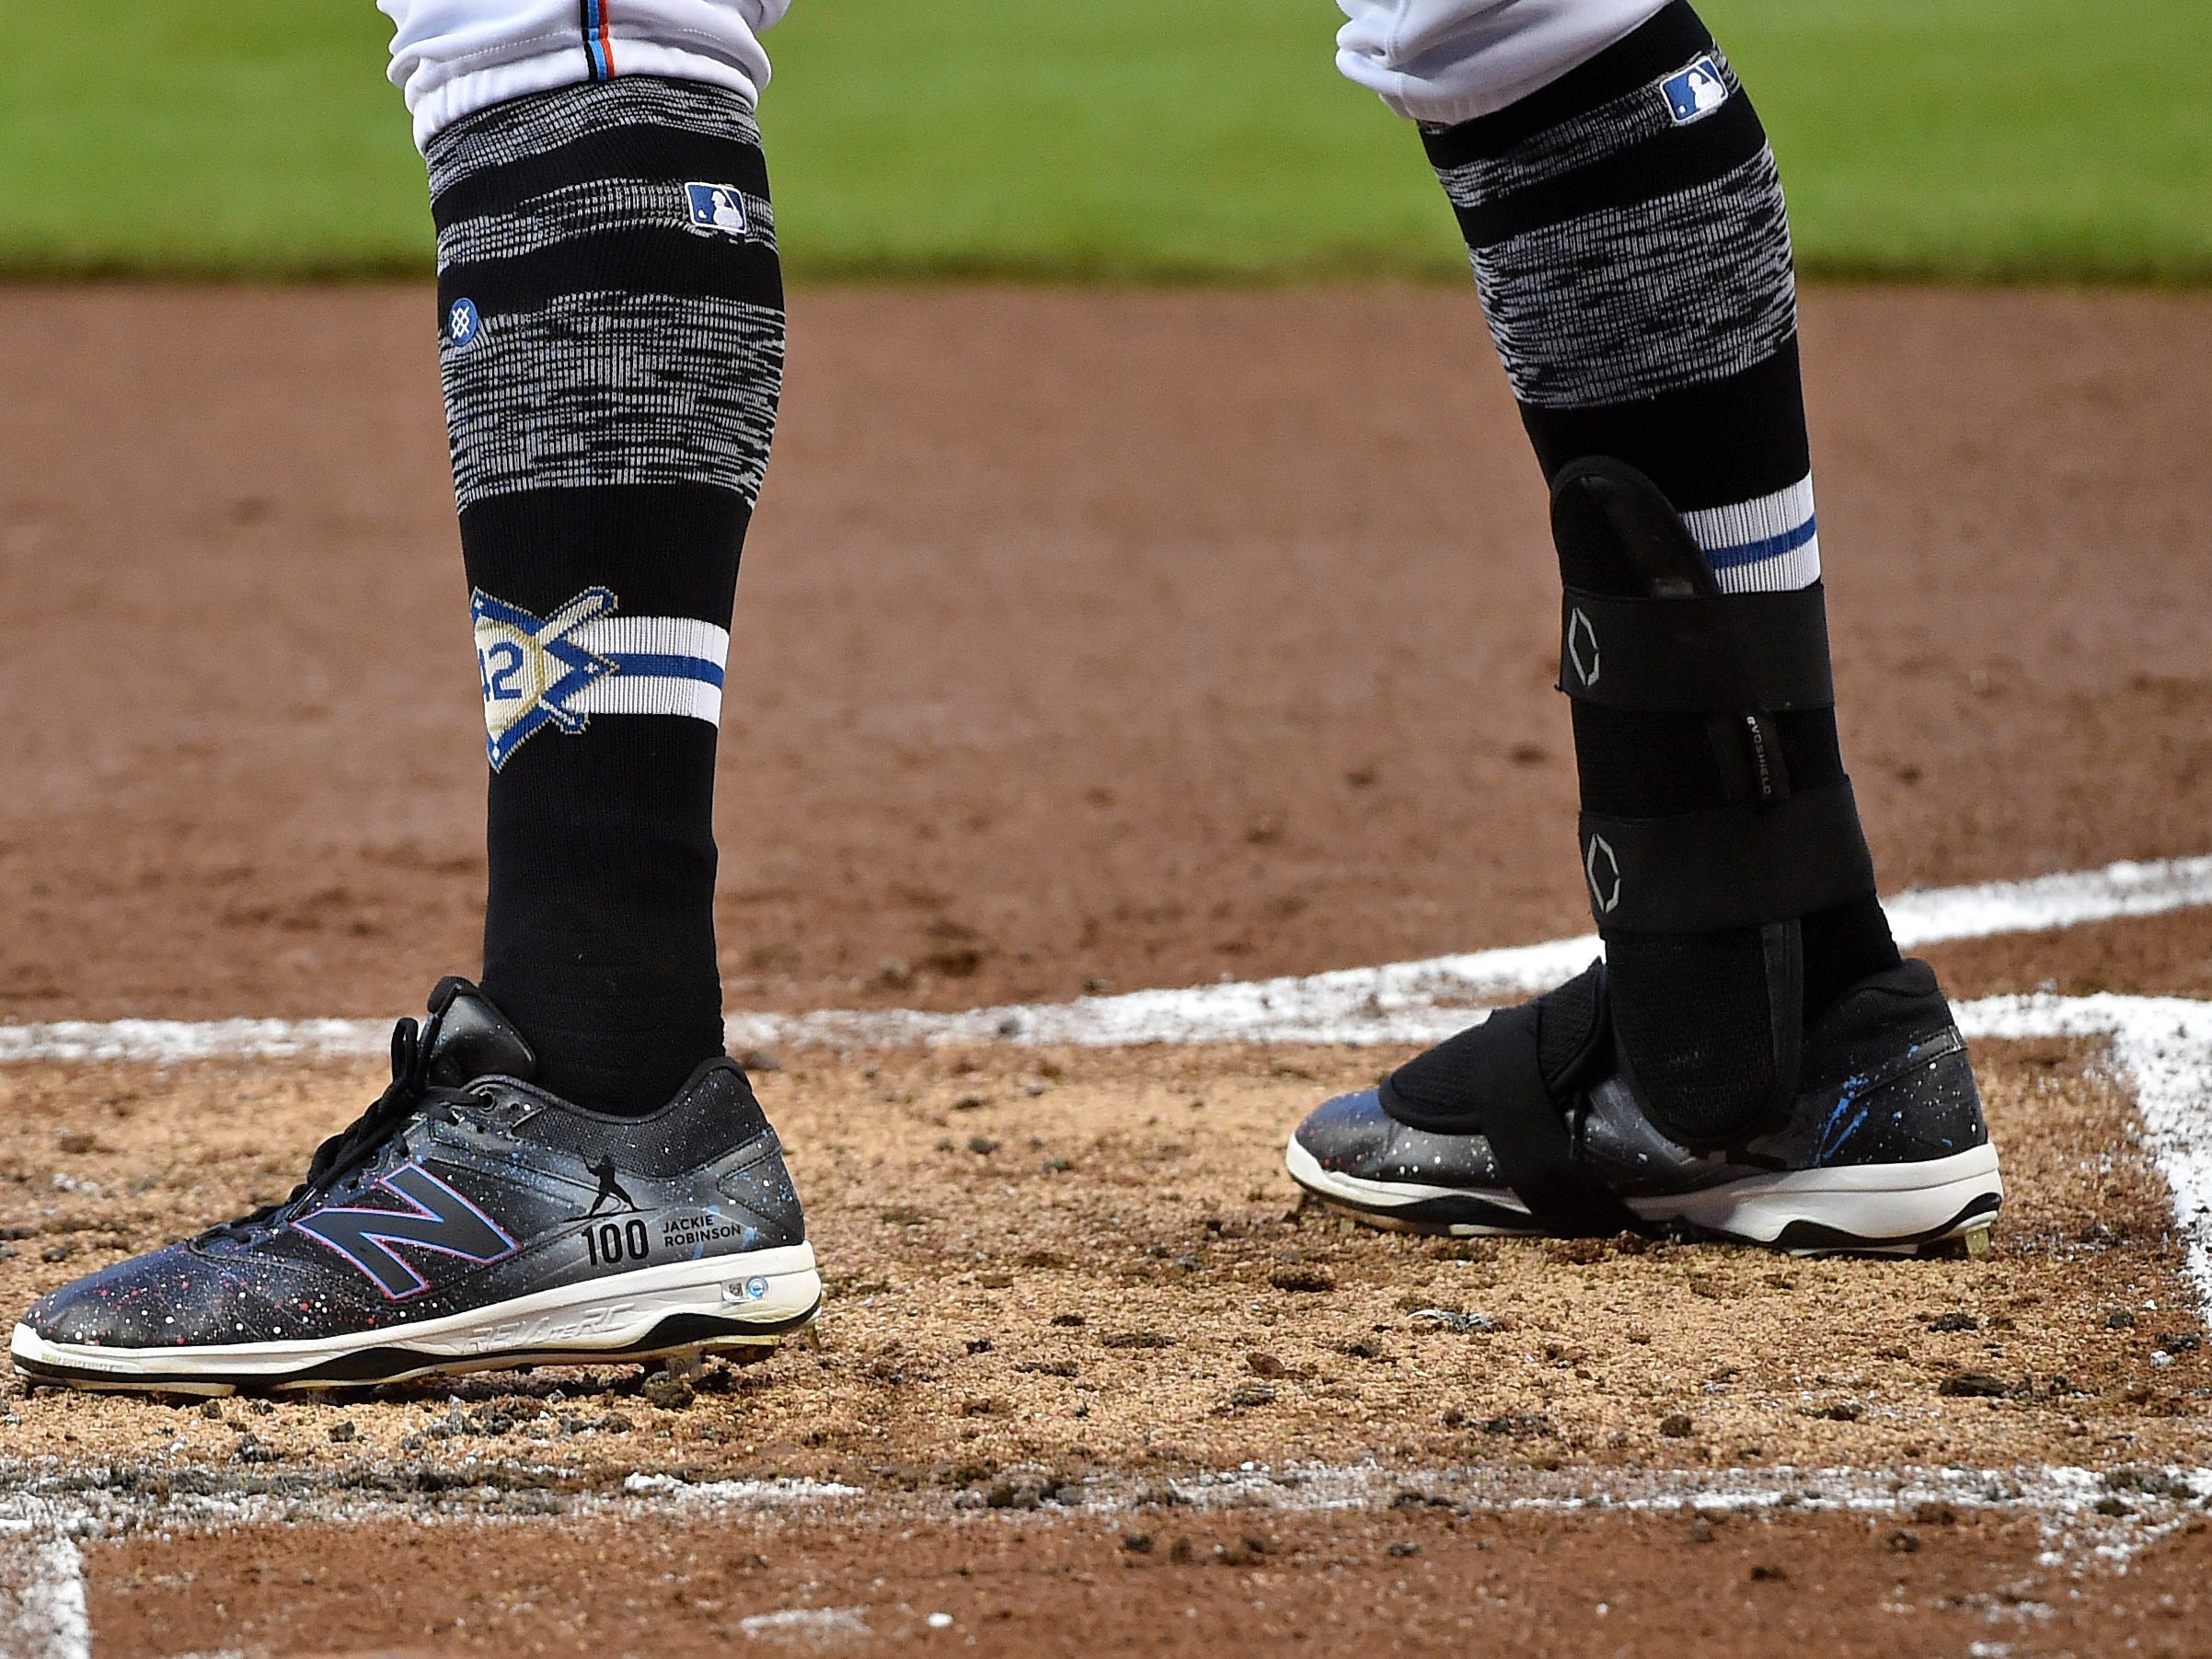 Marlins left fielder Curtis Granderson steps into the batters box wearing the No. 42 on his socks in honor of Jackie Robinson.